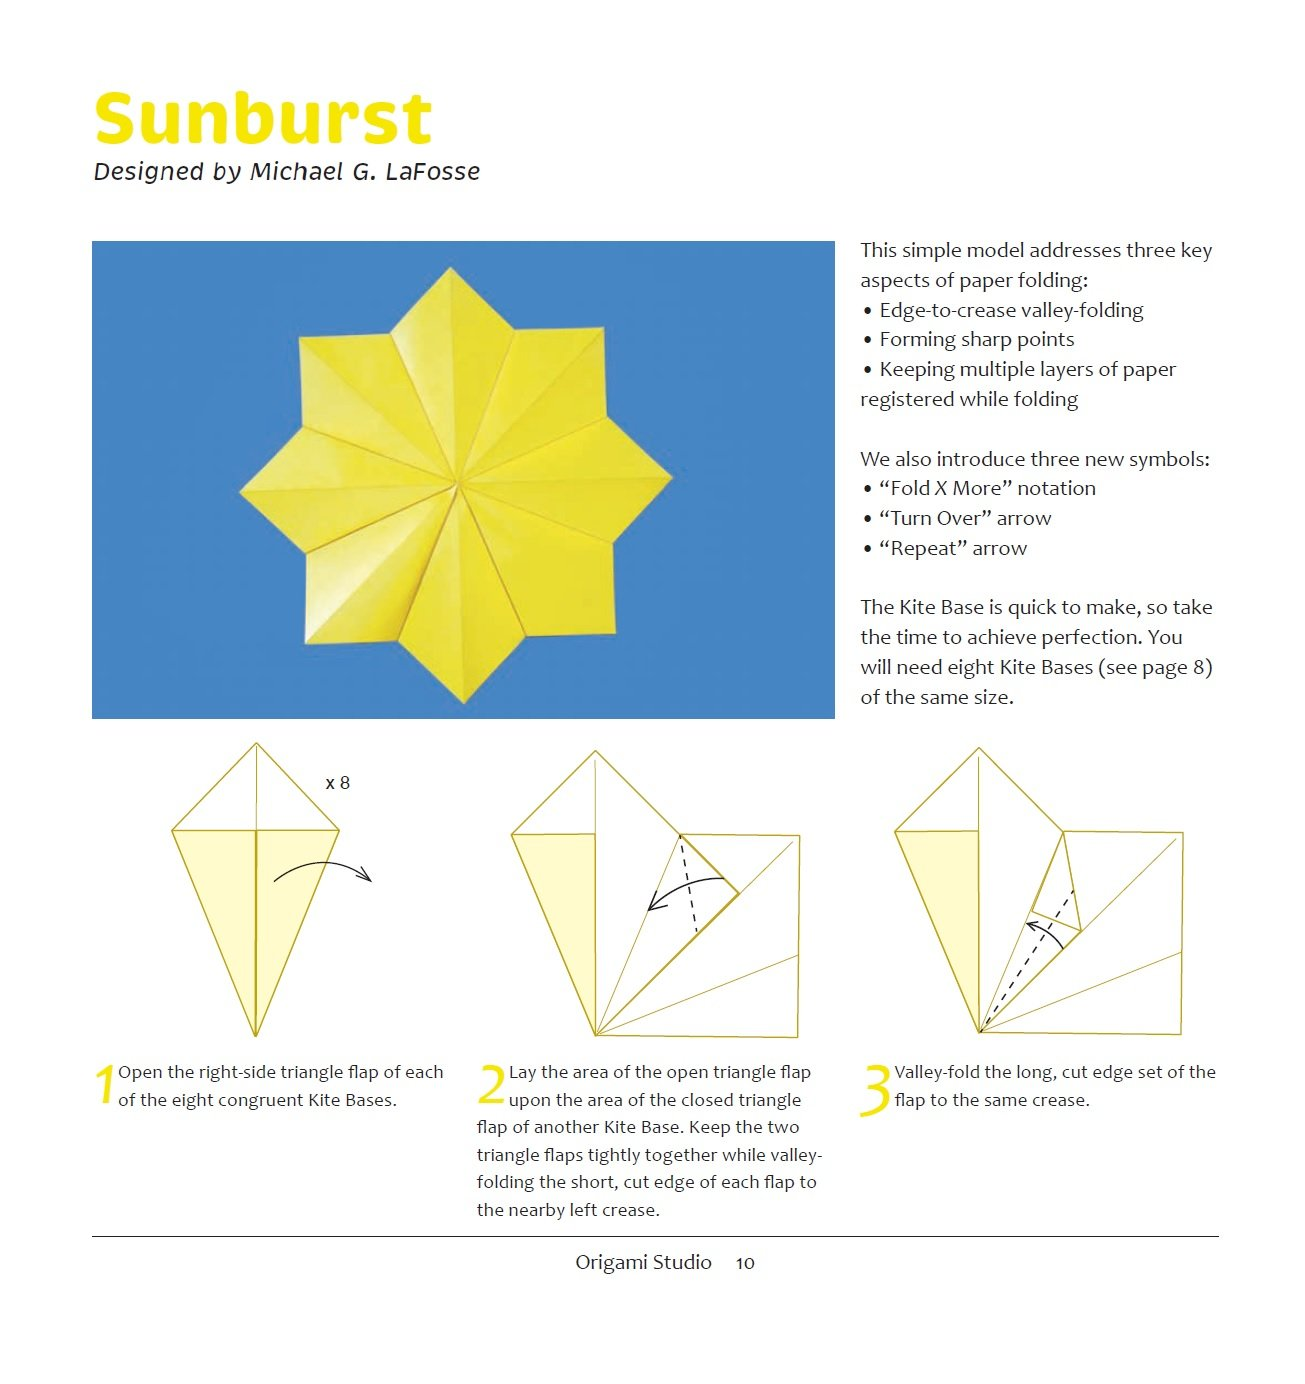 Origami Studio Kit Learn The Essentials From An Master Kite Diagrams Youtube Michael Lafosse 9784805311523 Books